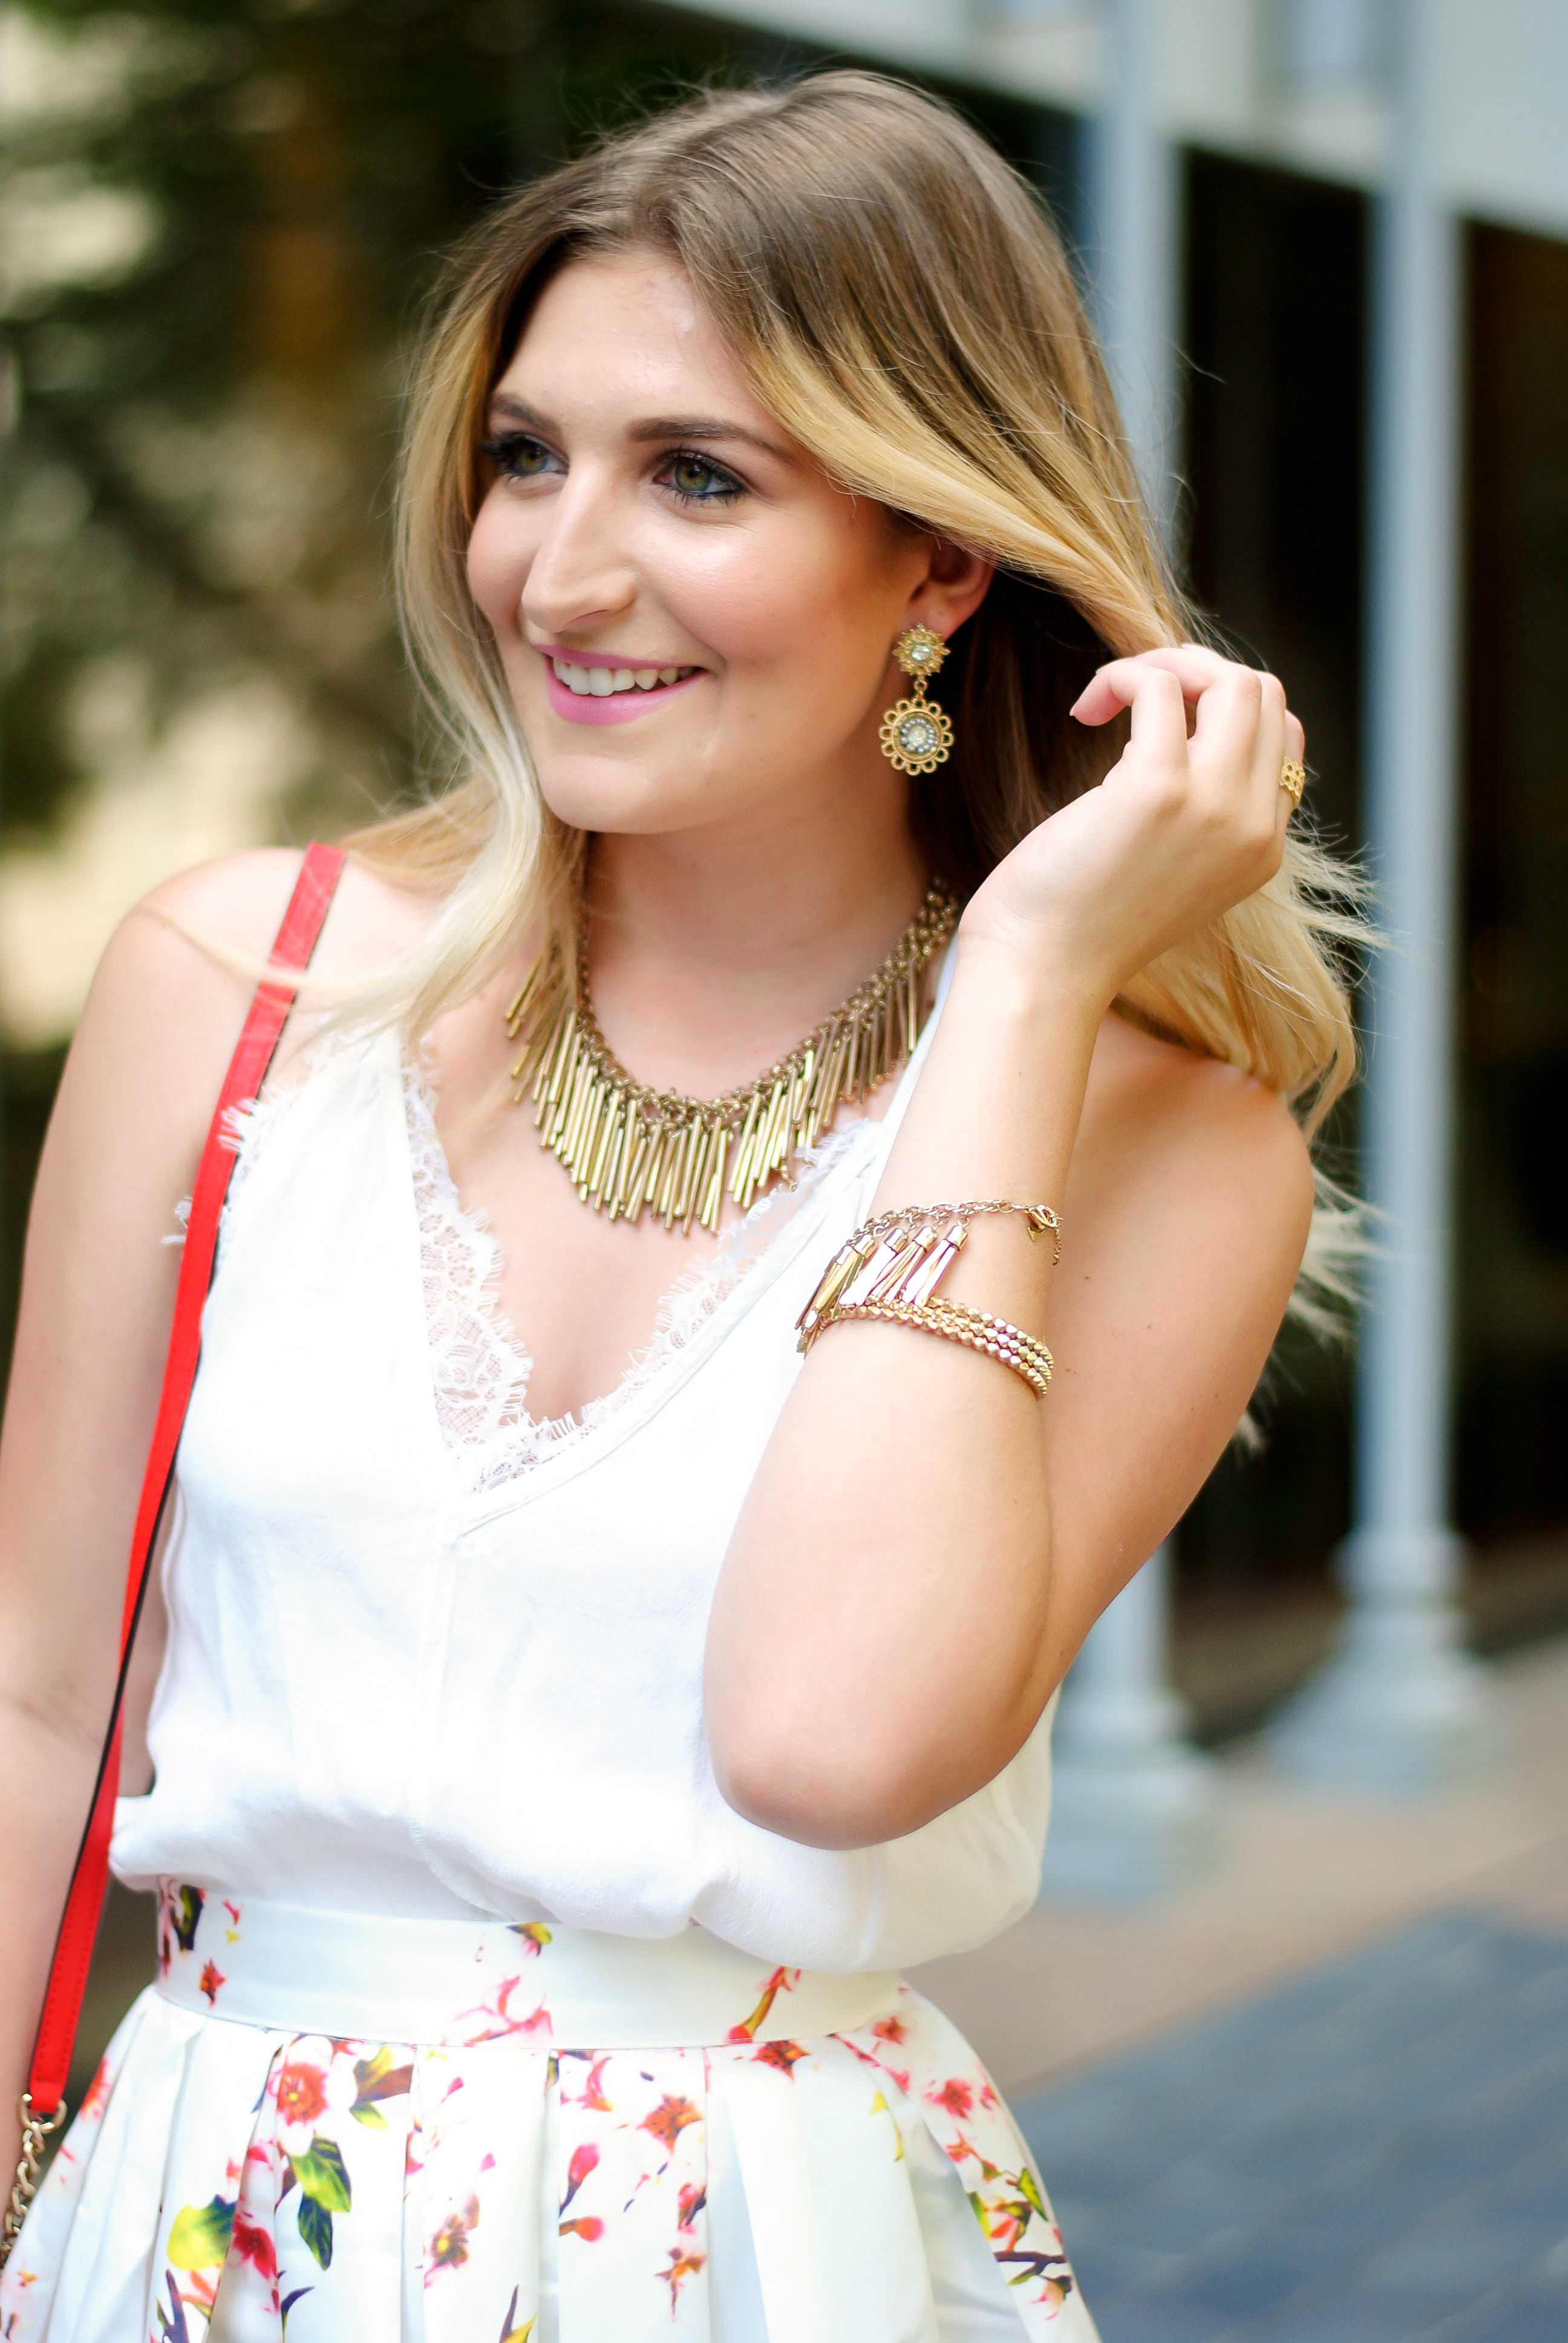 gold jewelry details for summer | Audrey Madison Stowe Blog